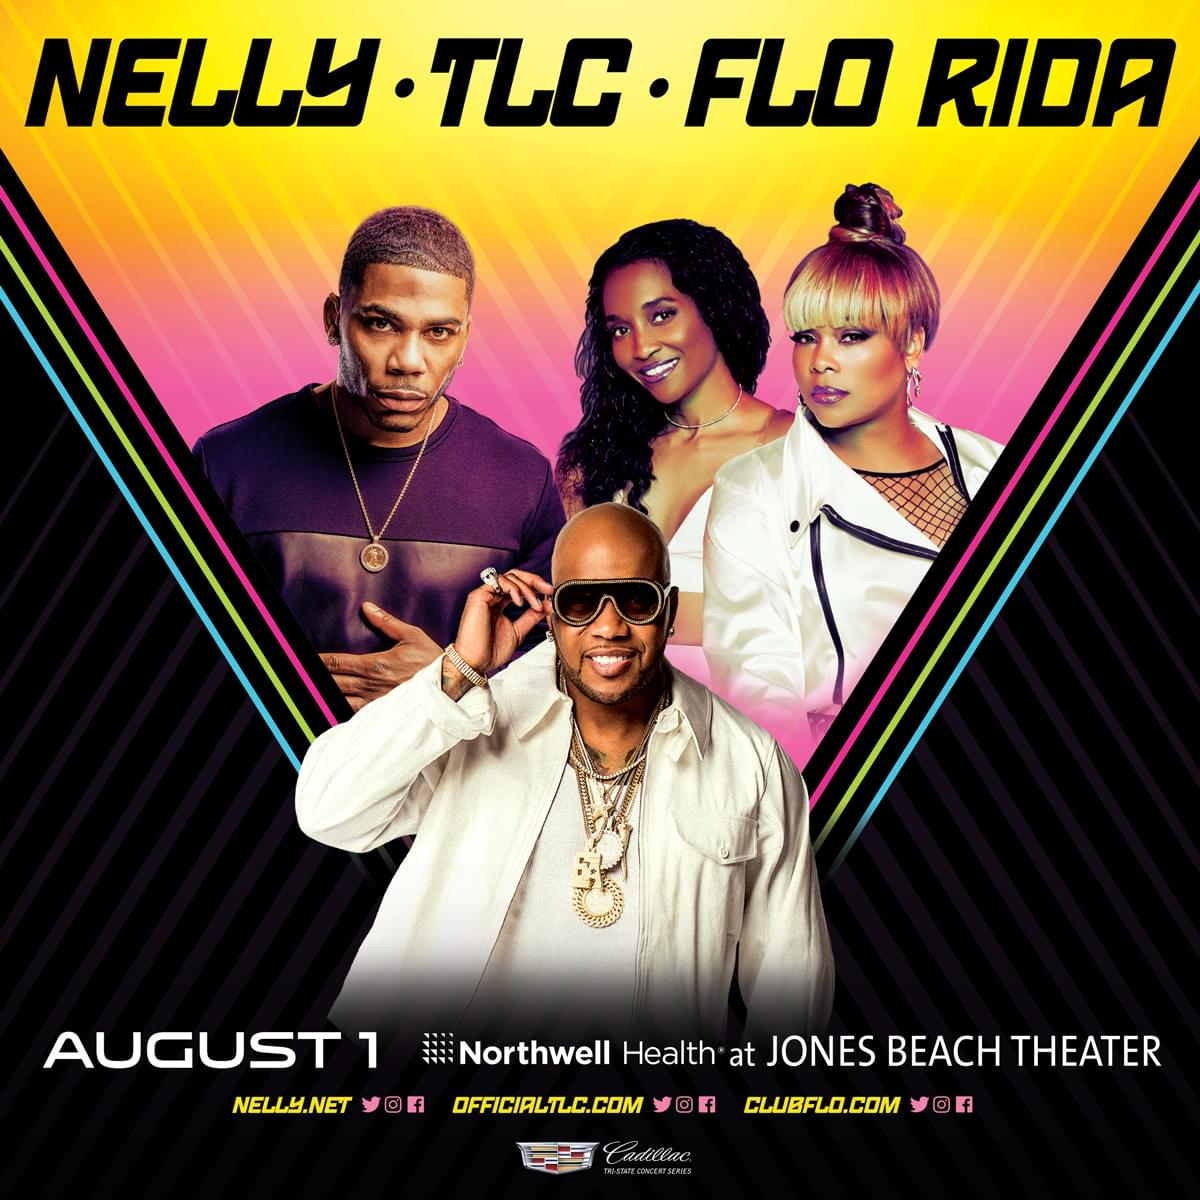 Win Tickets to See Nelly, TLC, and Flo Rida!